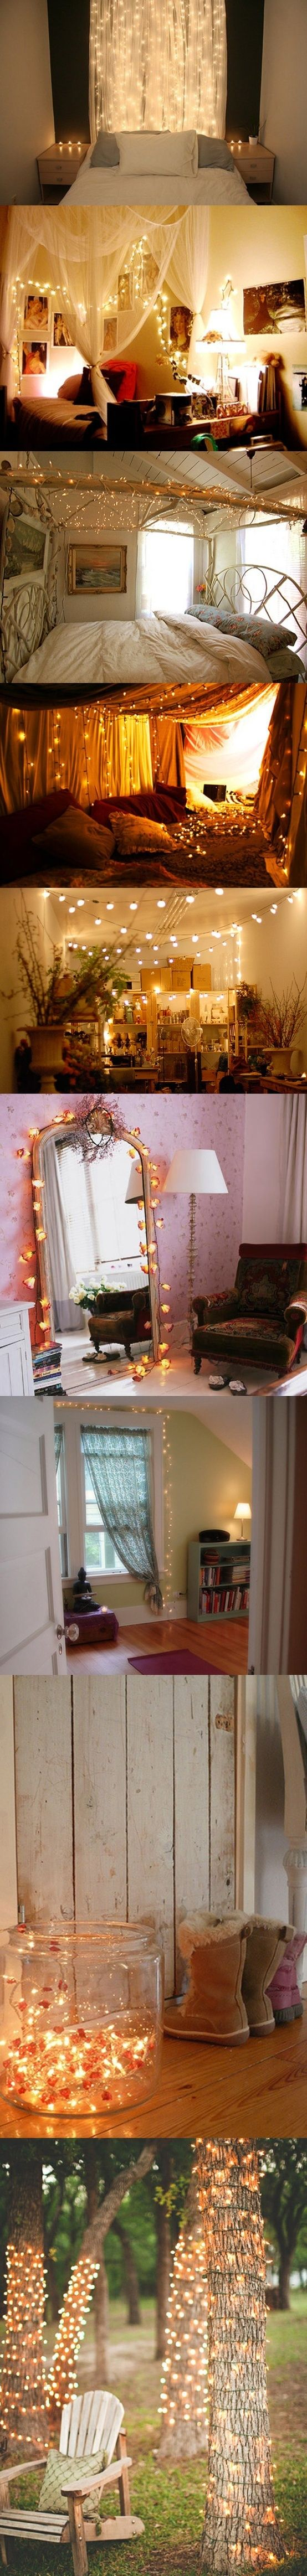 Tons of cute light ideas!